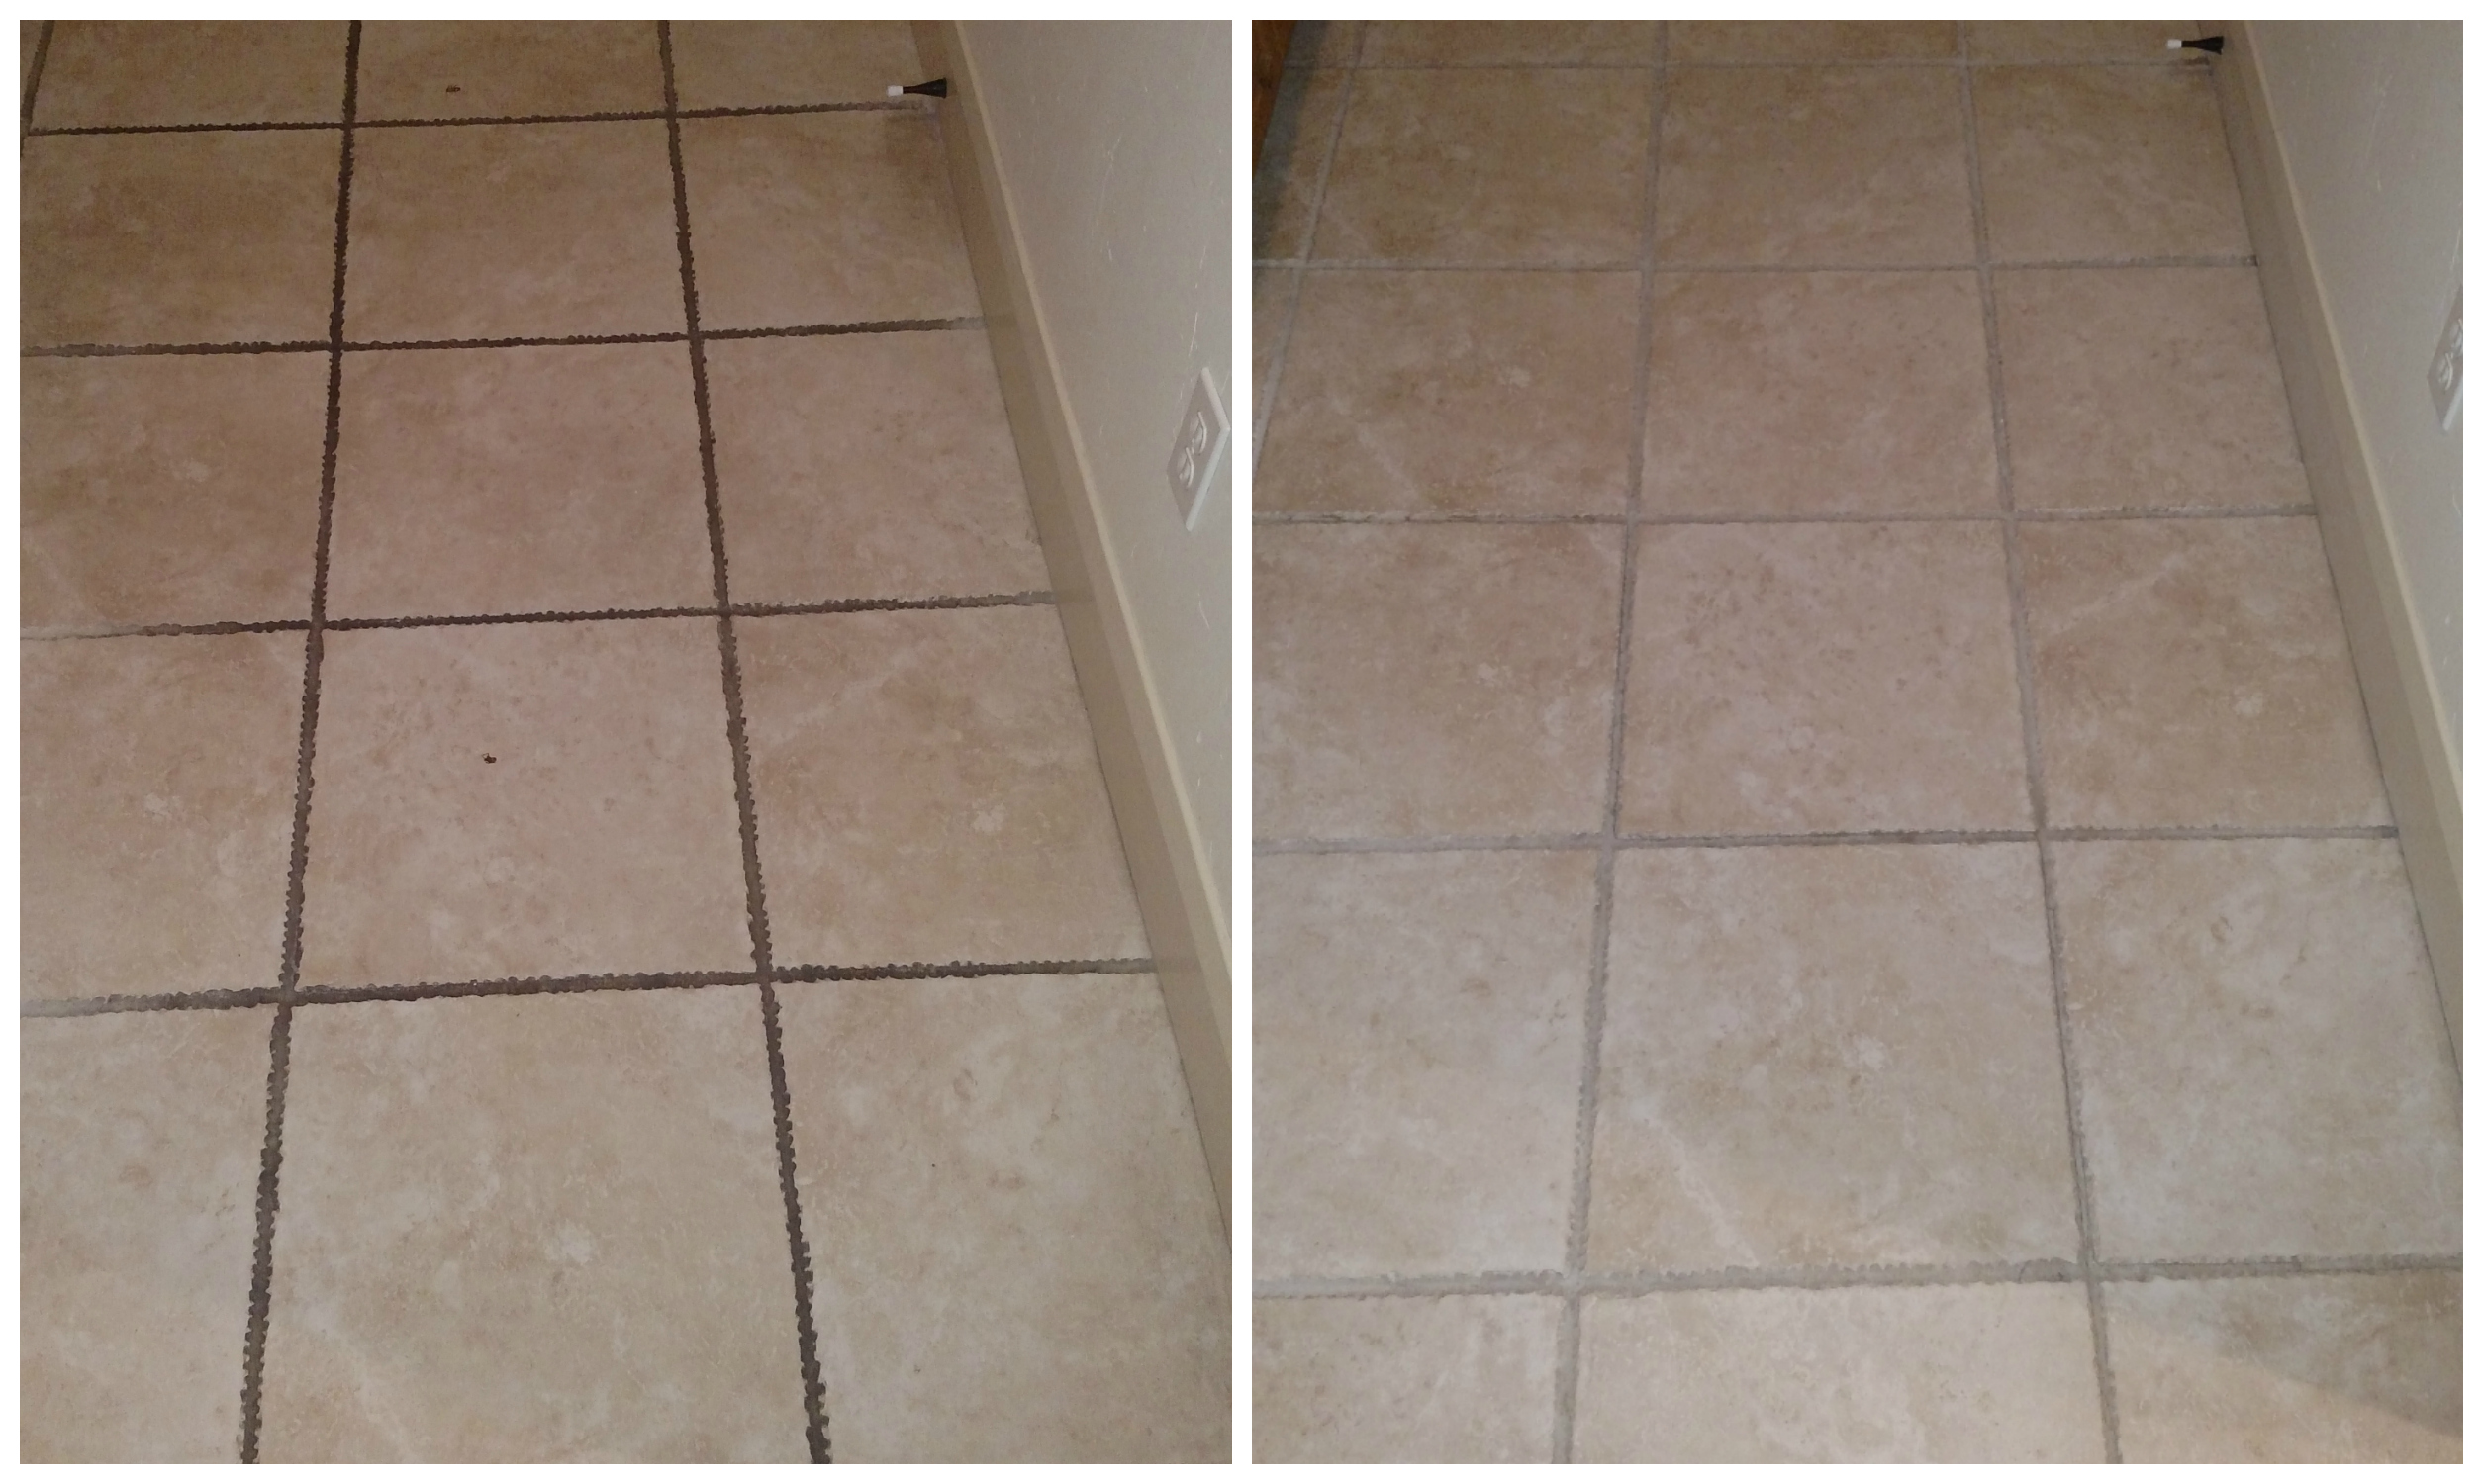 Tile cleaning experts hicaliber we arrive well prepared to tackle any job large or small we also offer grout sealing as well as cleaning services for ceramic porcelain granite marble dailygadgetfo Image collections